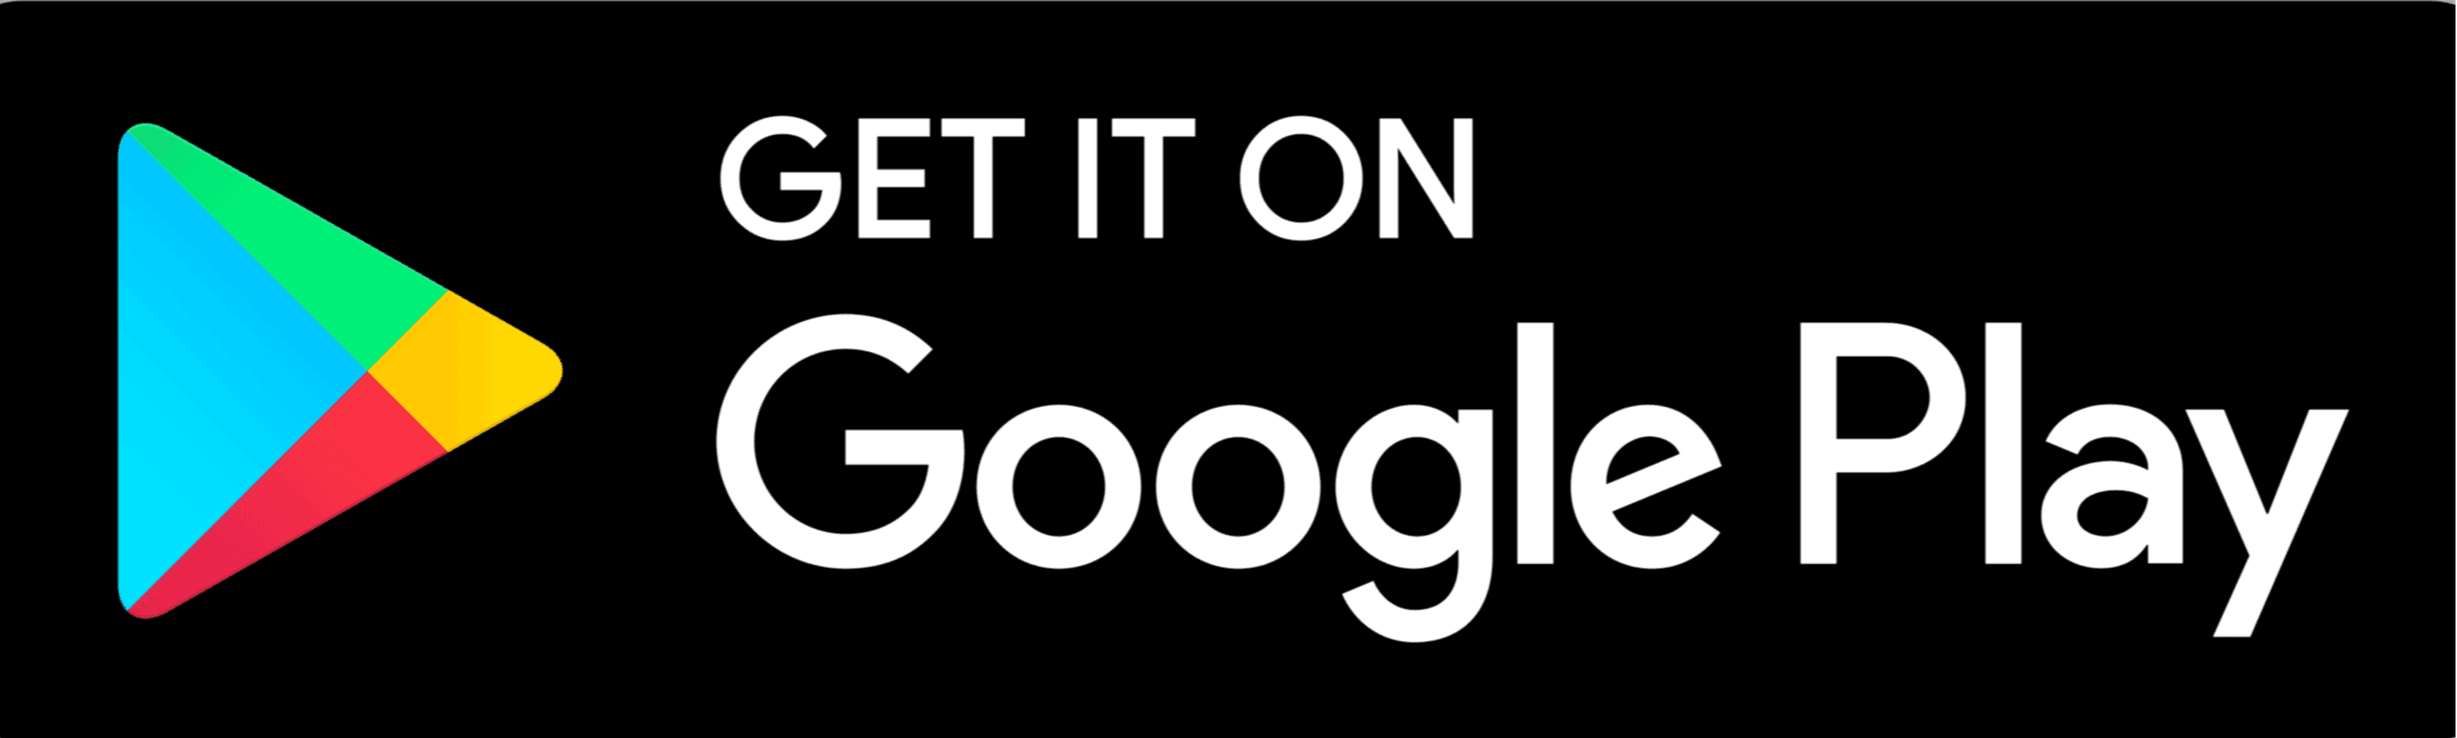 get it on google play image